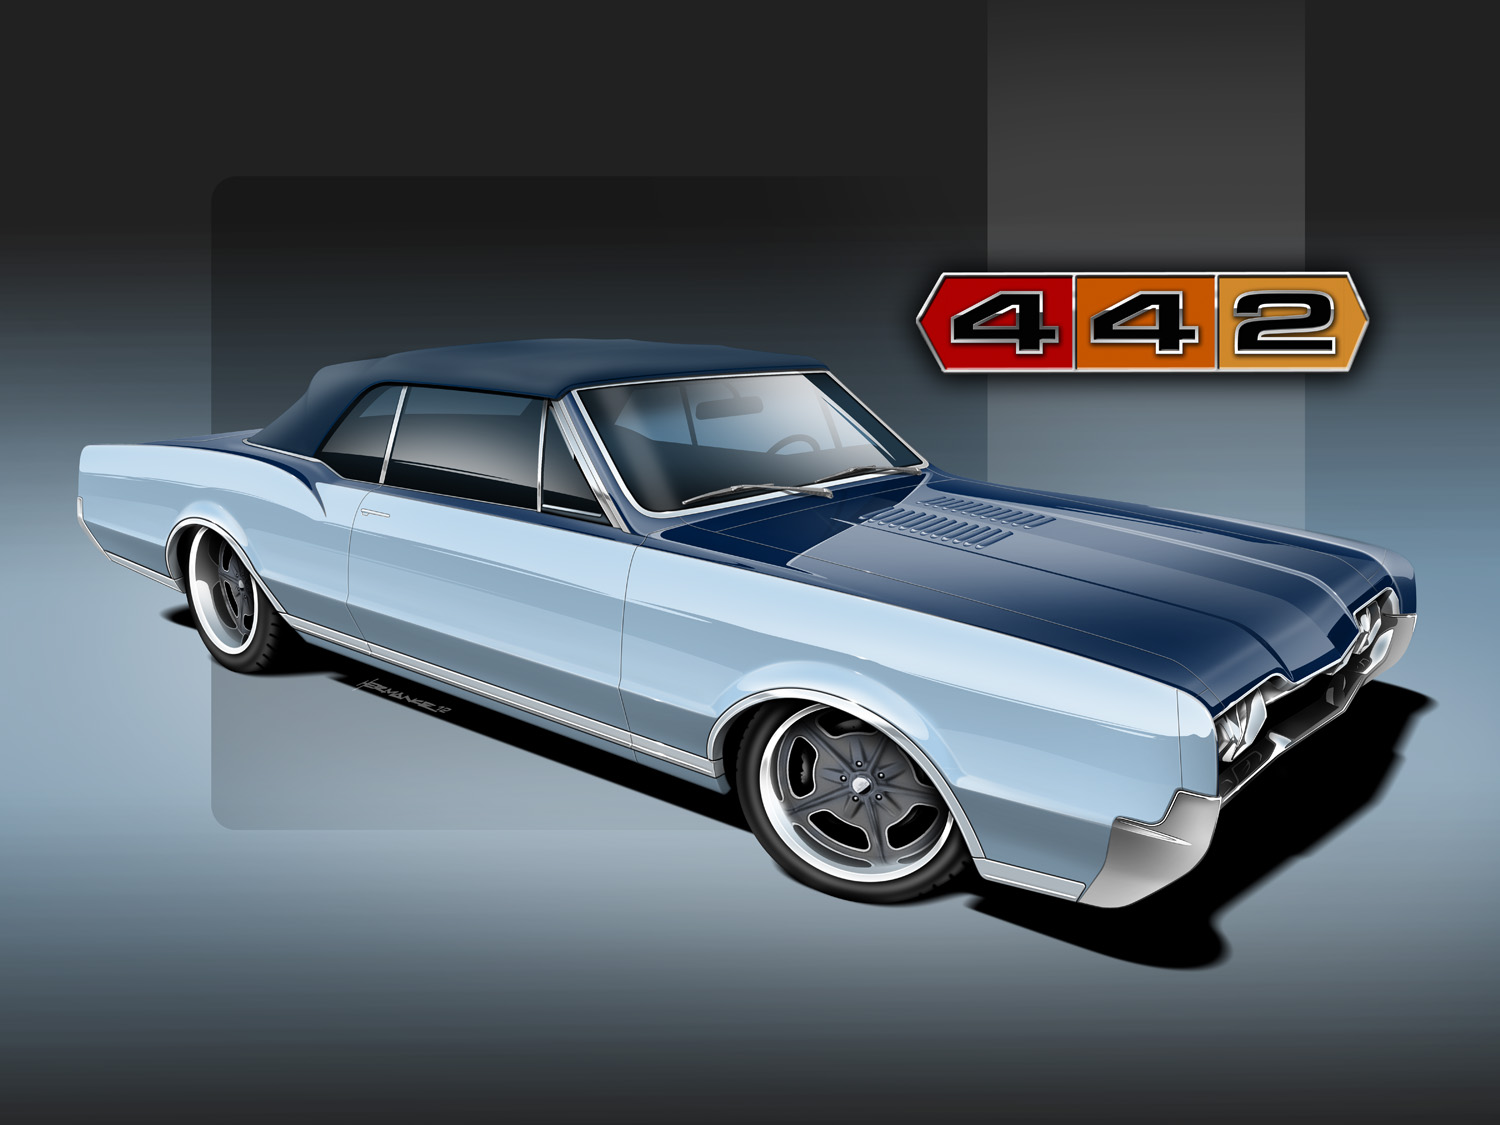 Showthread likewise Watch further Alternator Upgrades Junkyard Builder likewise Acl 117b besides 96067 1967 Olds 442W30 Build. on 1970 chevelle wiring diagram